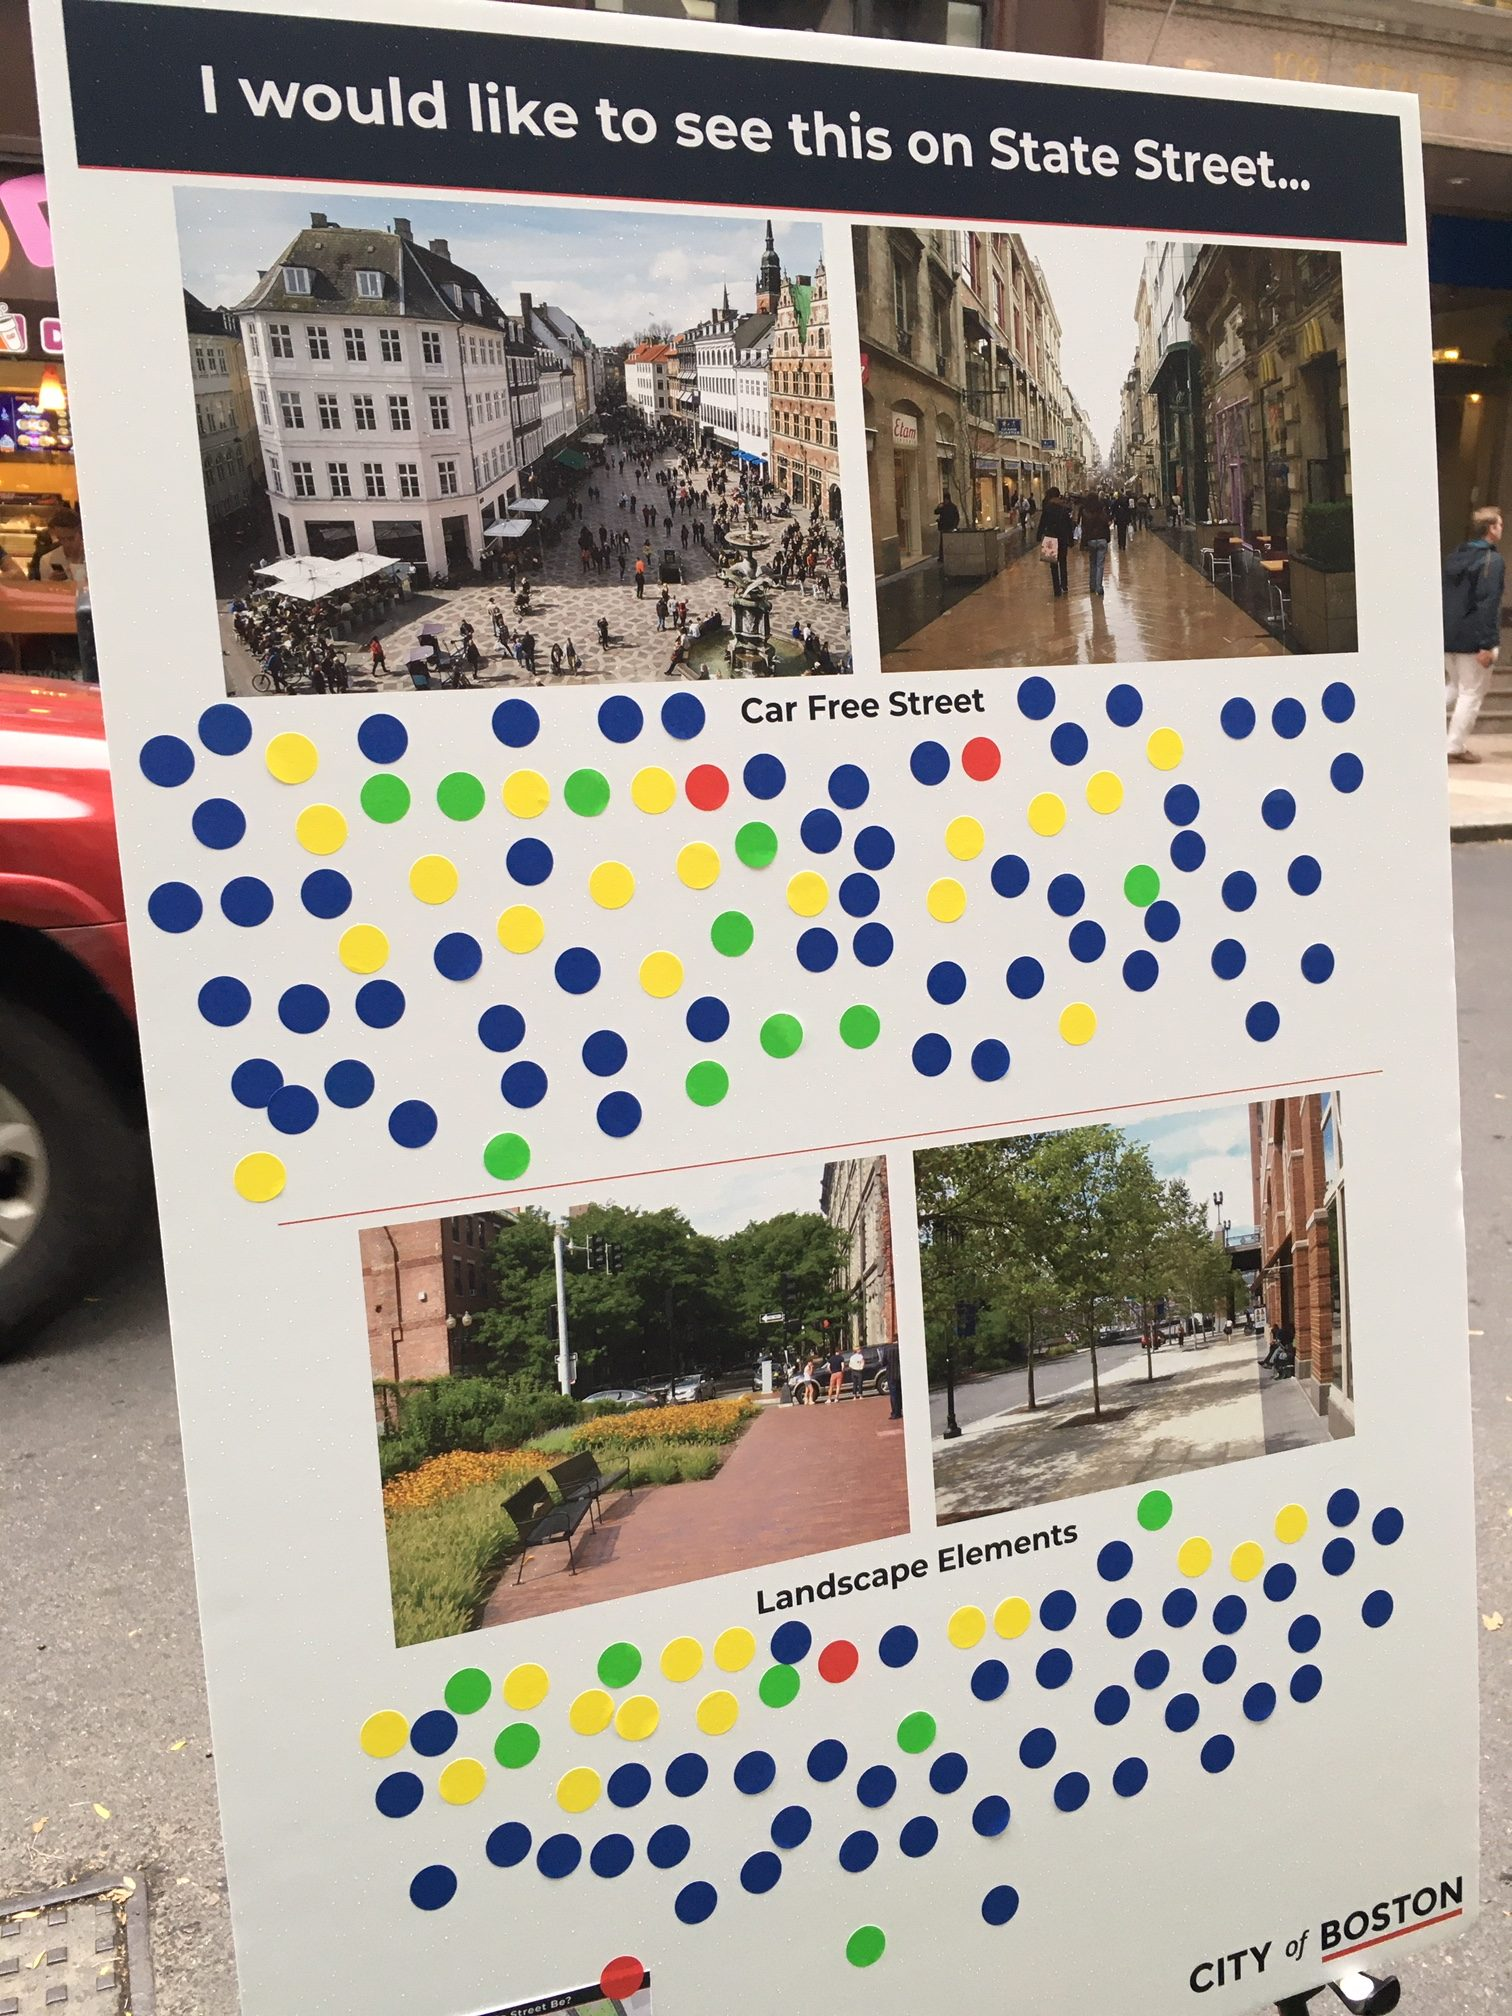 On Wednesday, Oct. 30, 2019, planners from the City of Boston asked passerby to vote for a range of potential street design elements as they plan for a reconstruction project on State Street in downtown Boston.